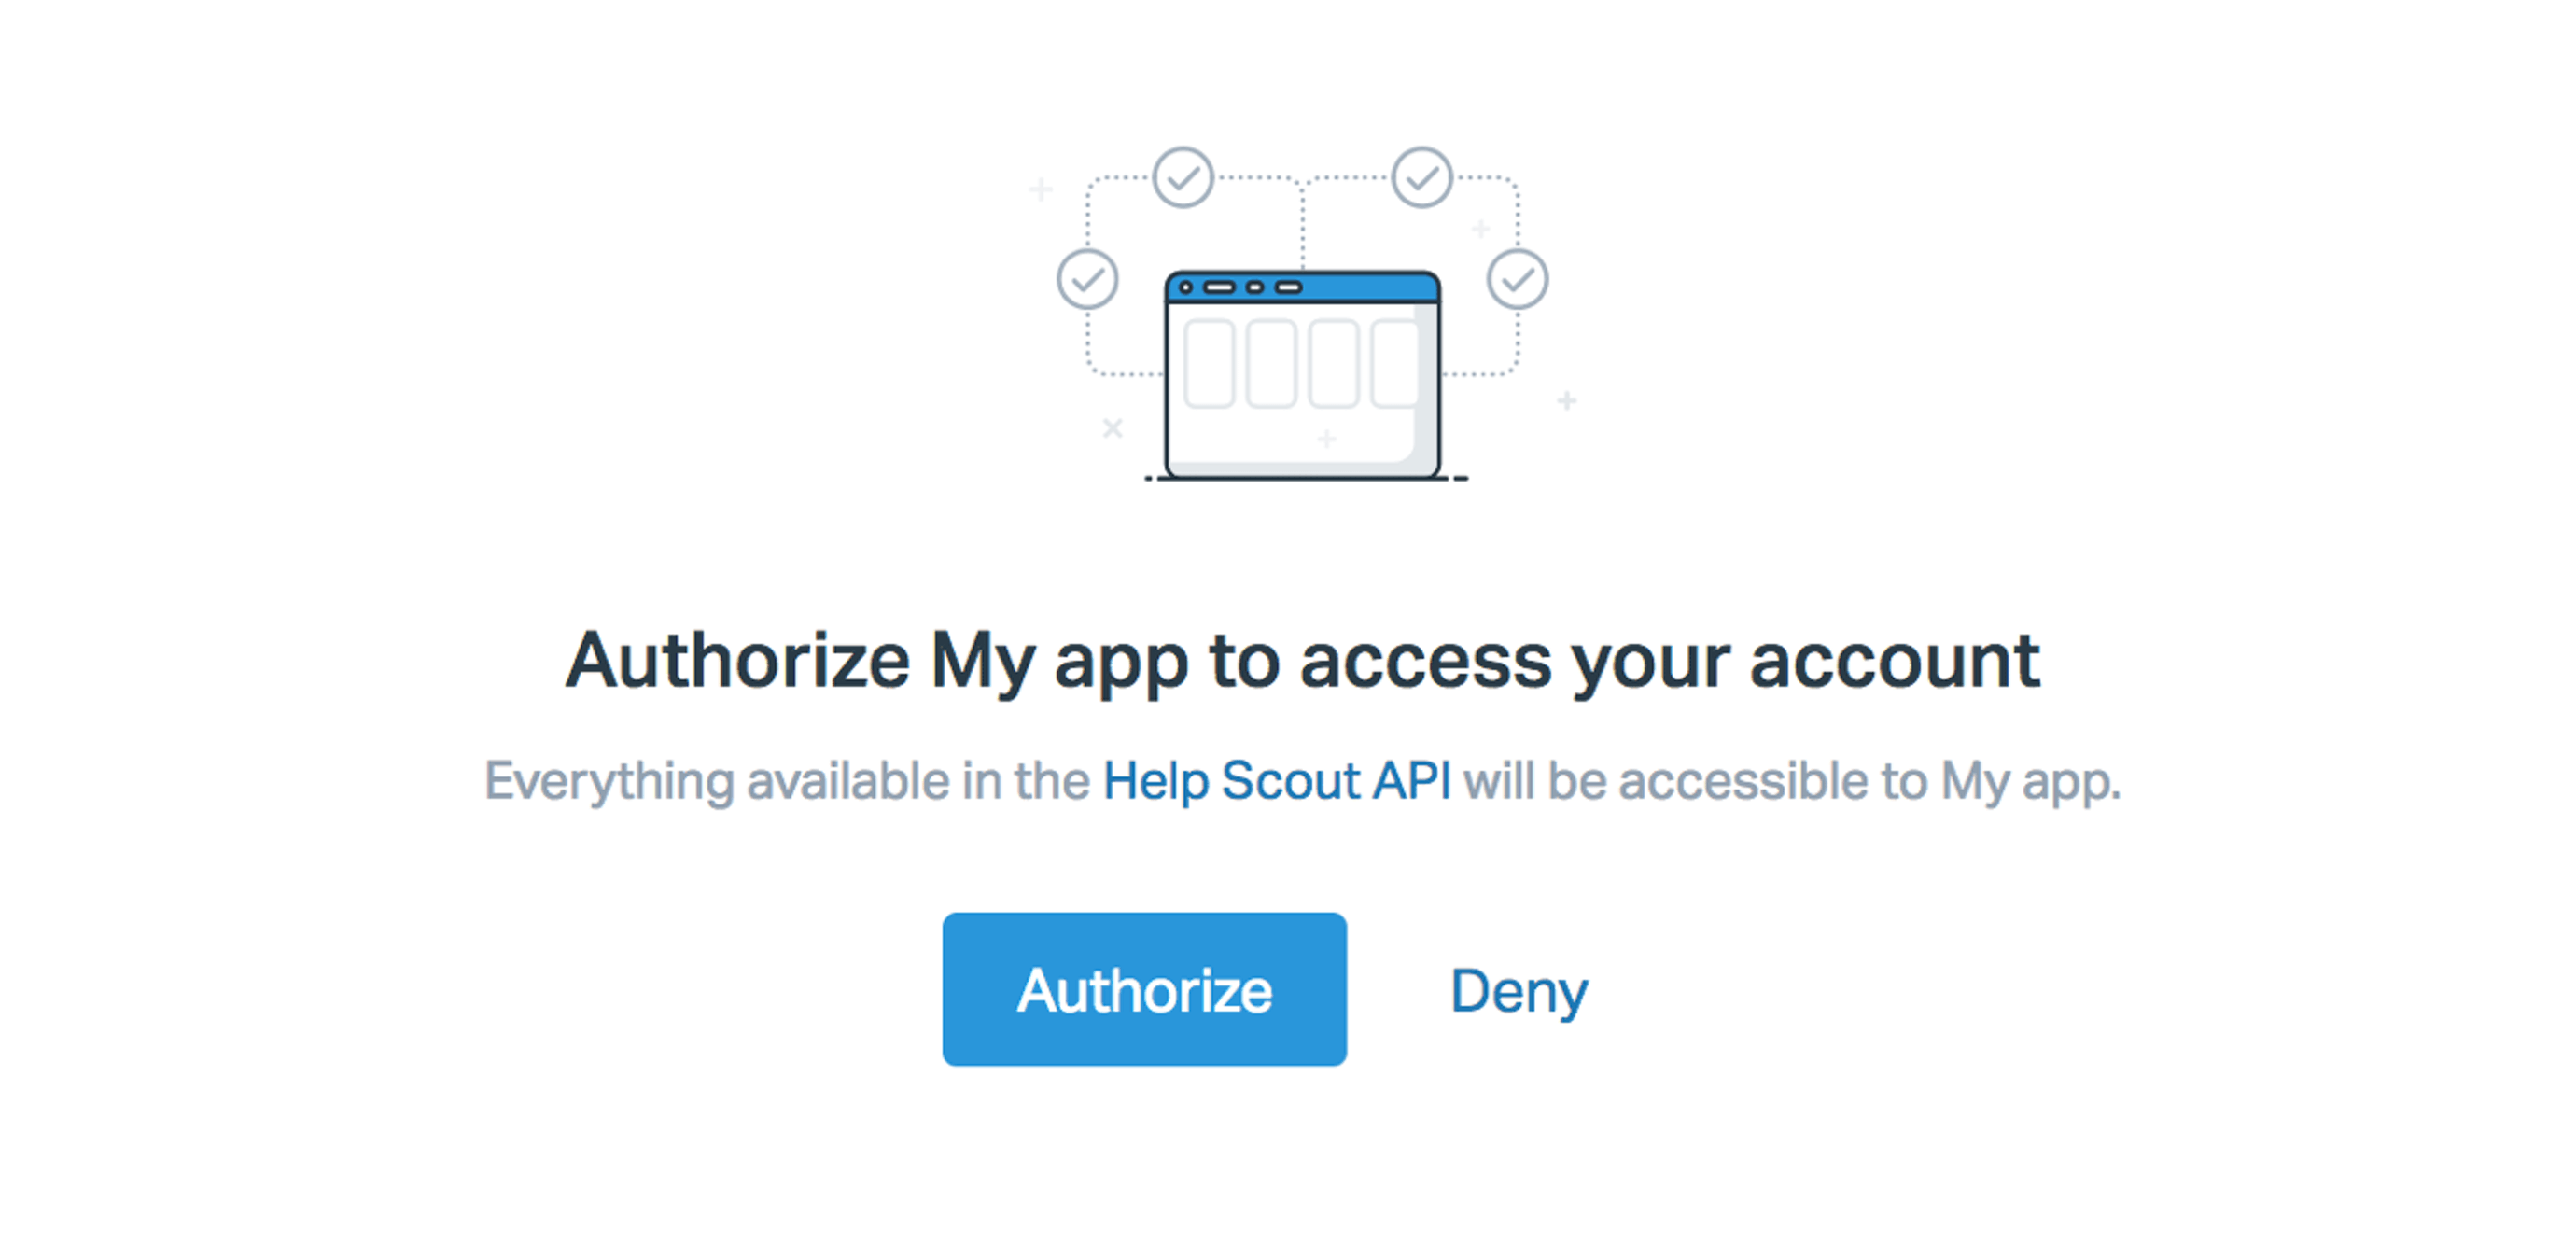 Image of Help Scout authorization screen